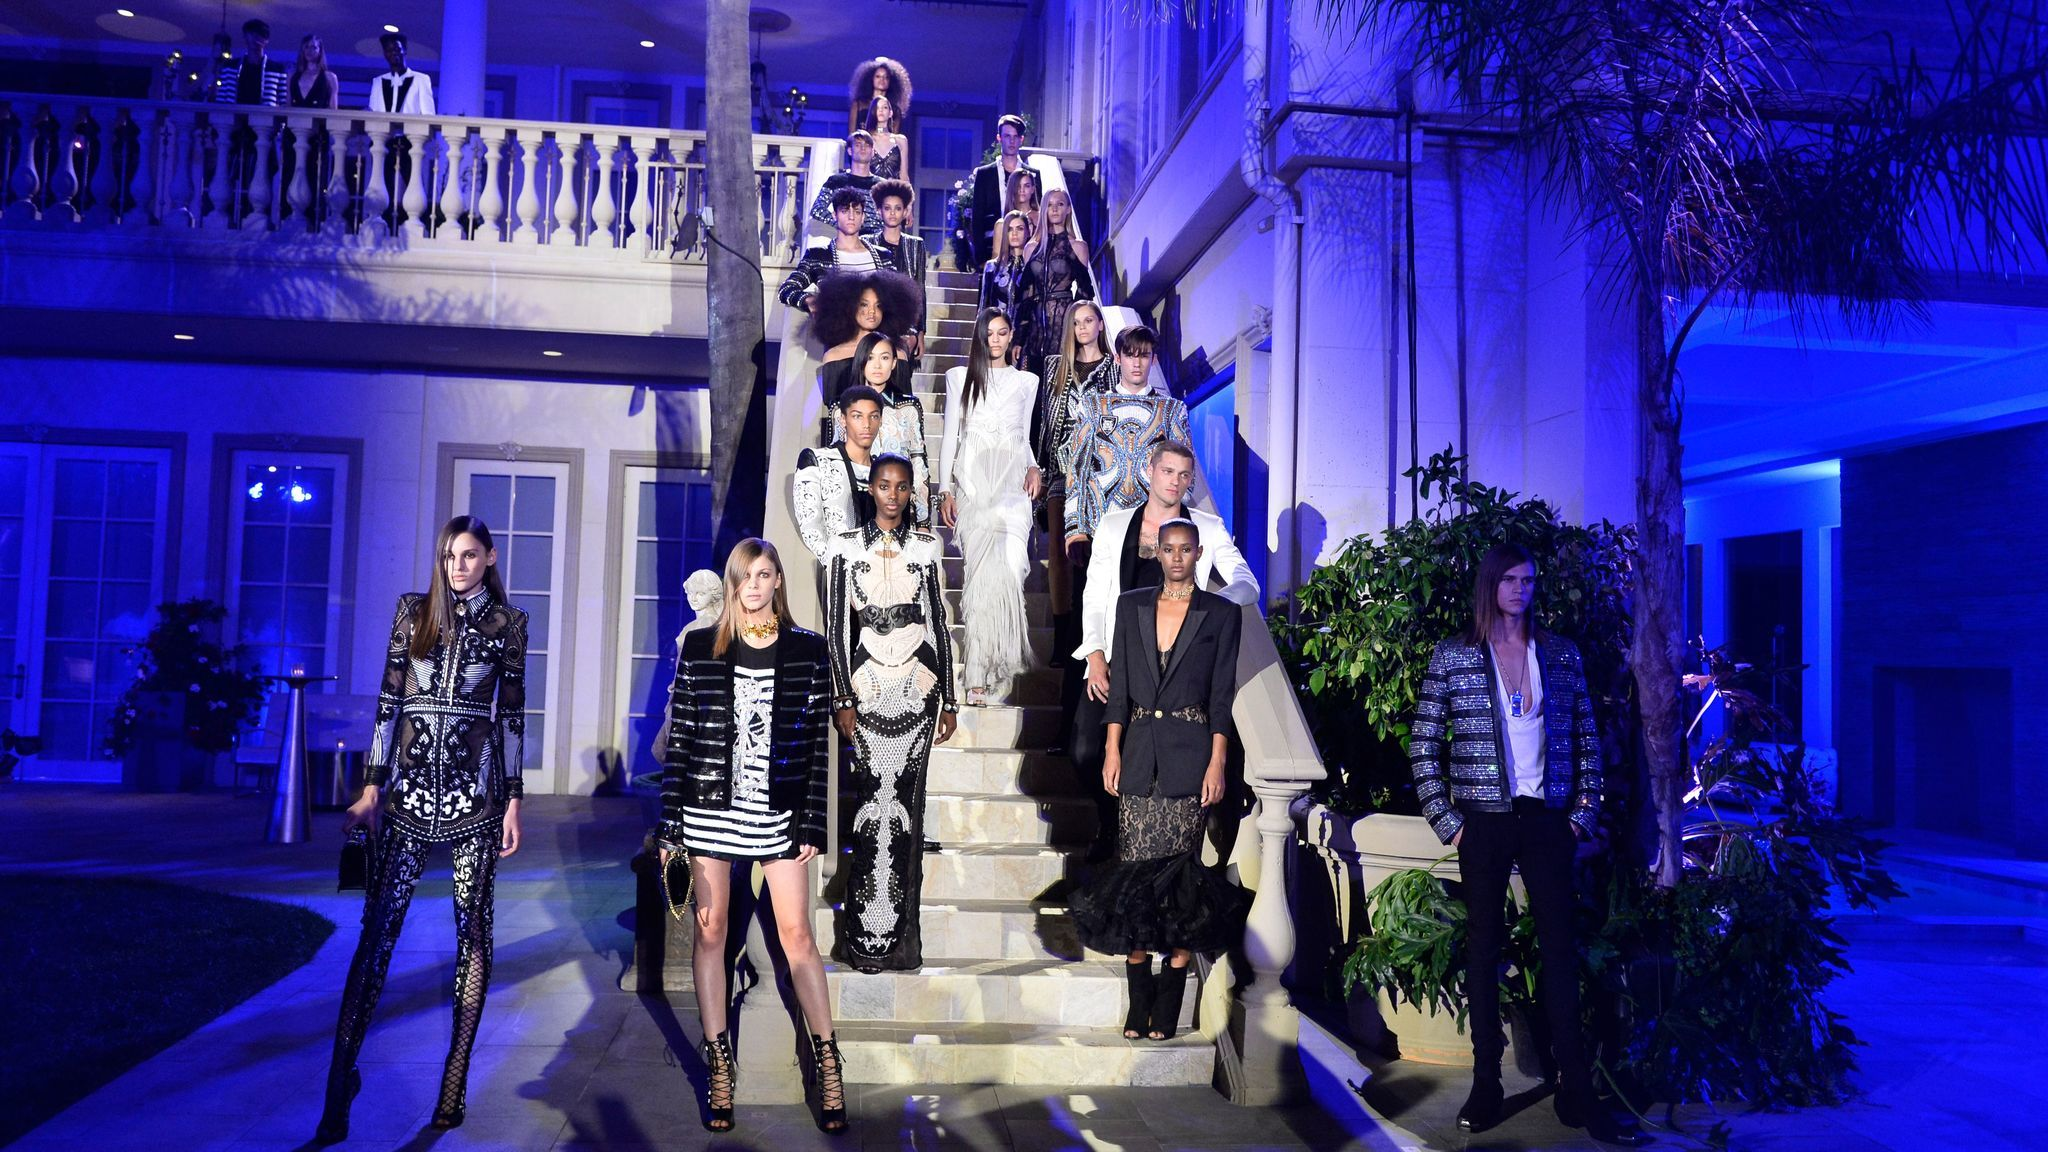 Models walk the outdoors runway at the Balmain celebration party for the opening of the brand's first Los Angeles boutique and its Beats by Dre collaboration on July 20 in Beverly Hills.